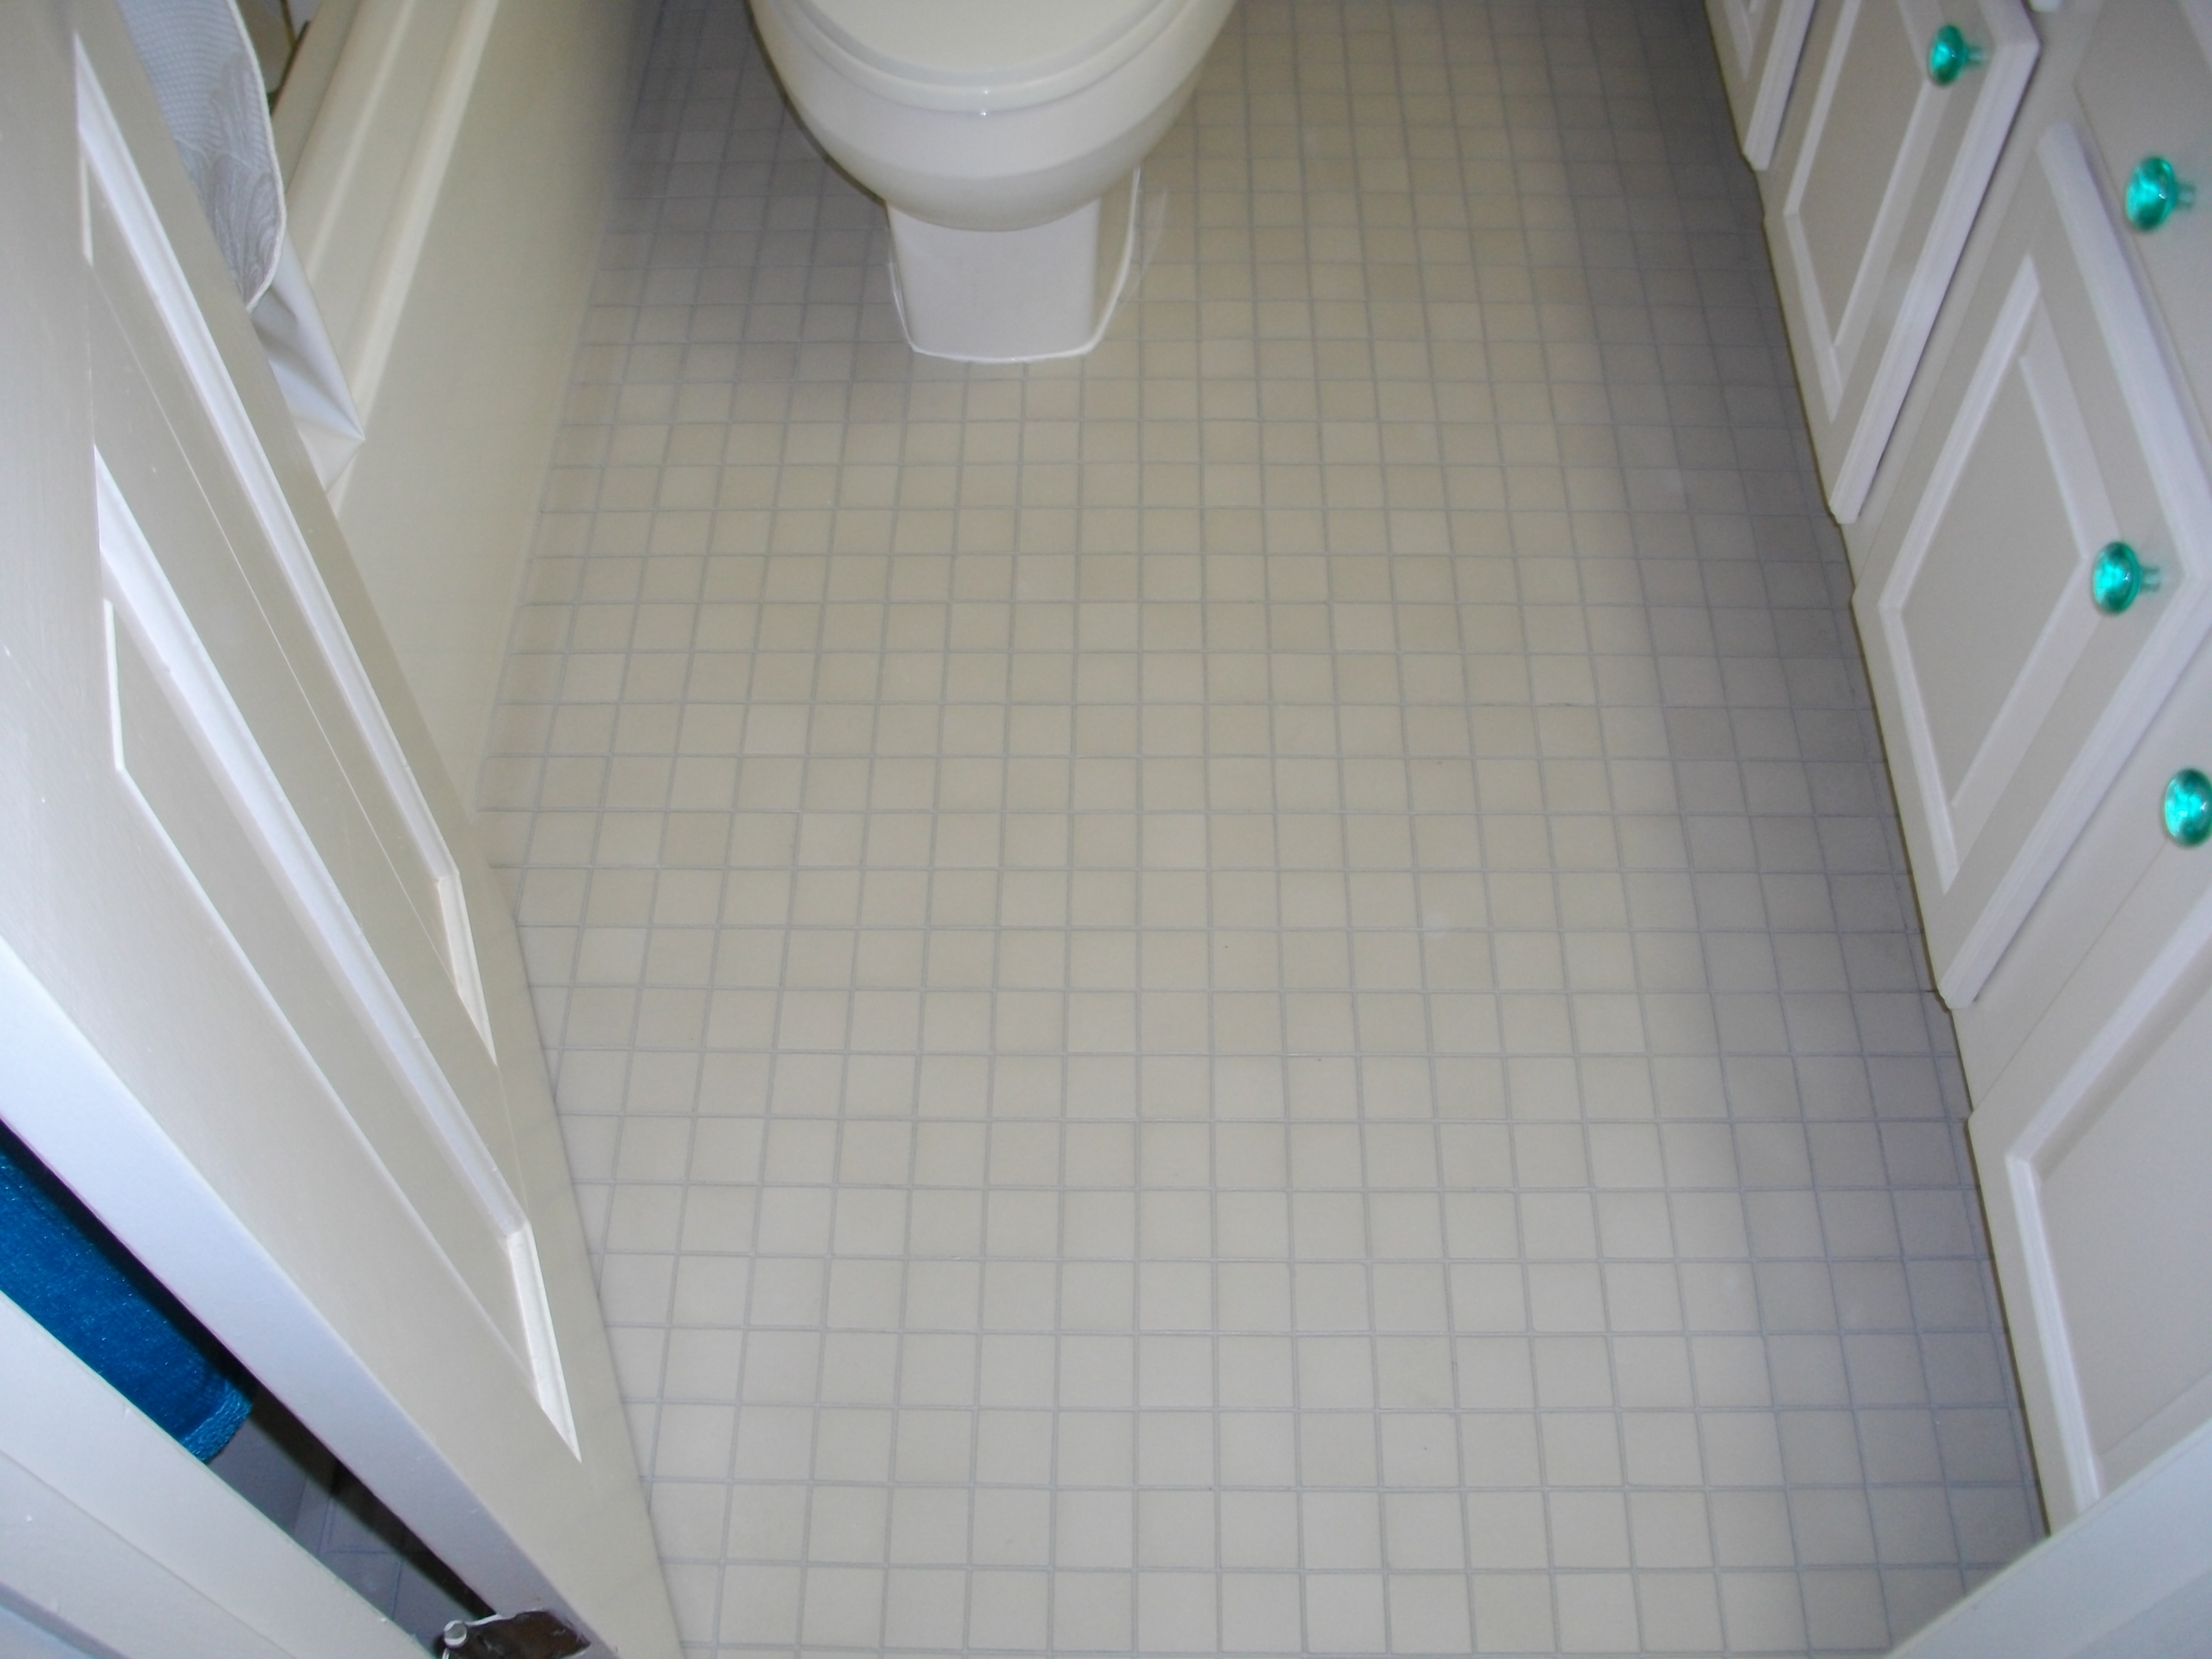 Bathroom Floor Tiles Sealing : Carolina grout works baths cleaning sealing